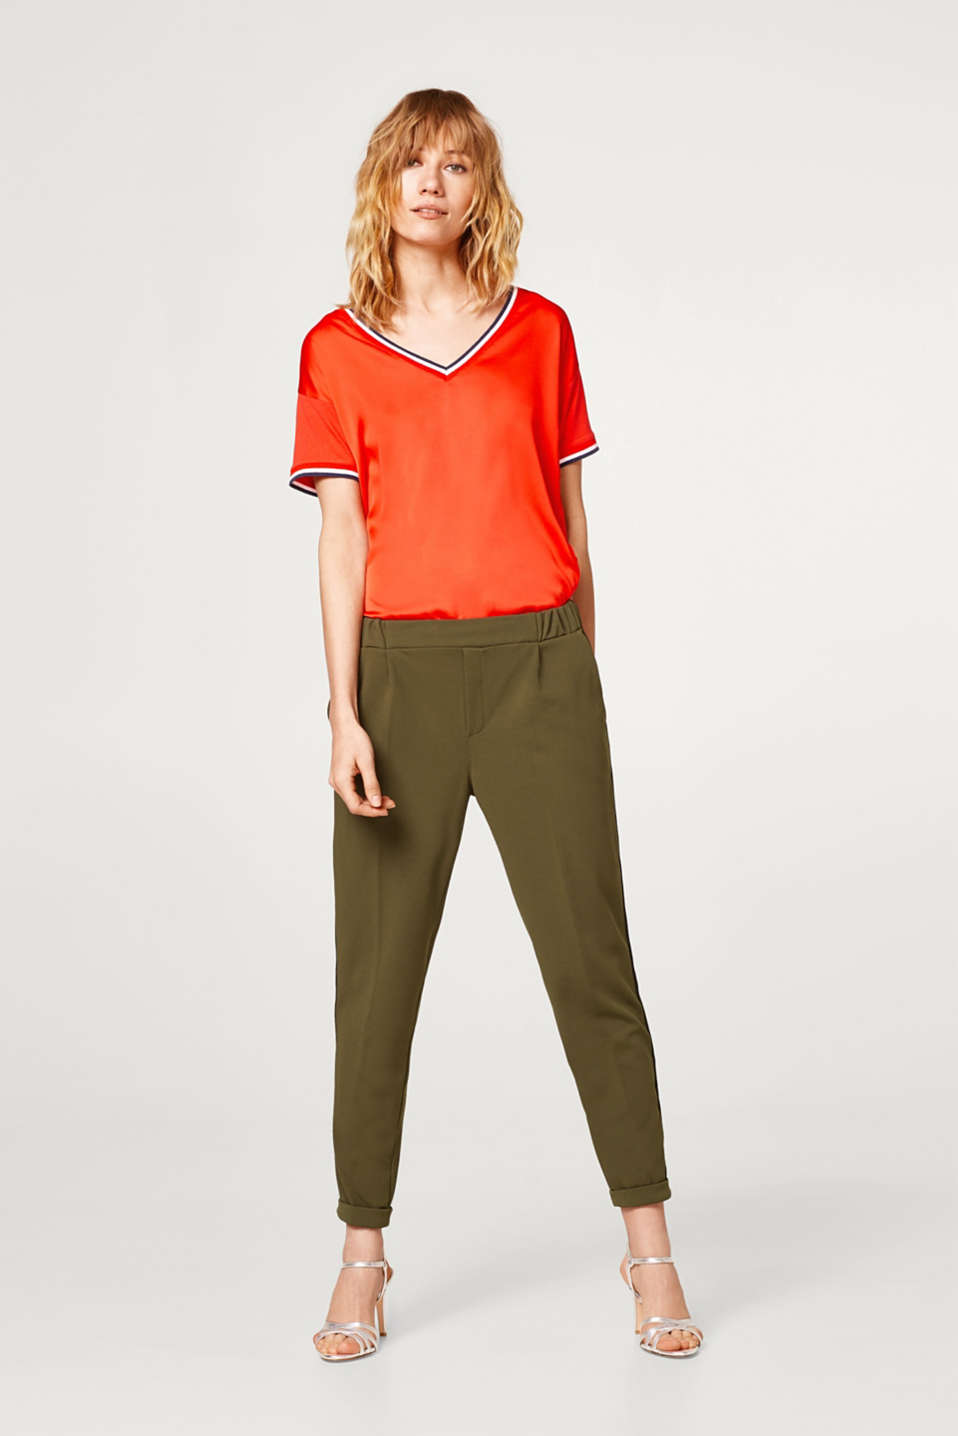 Crêpe trousers in a joggers style